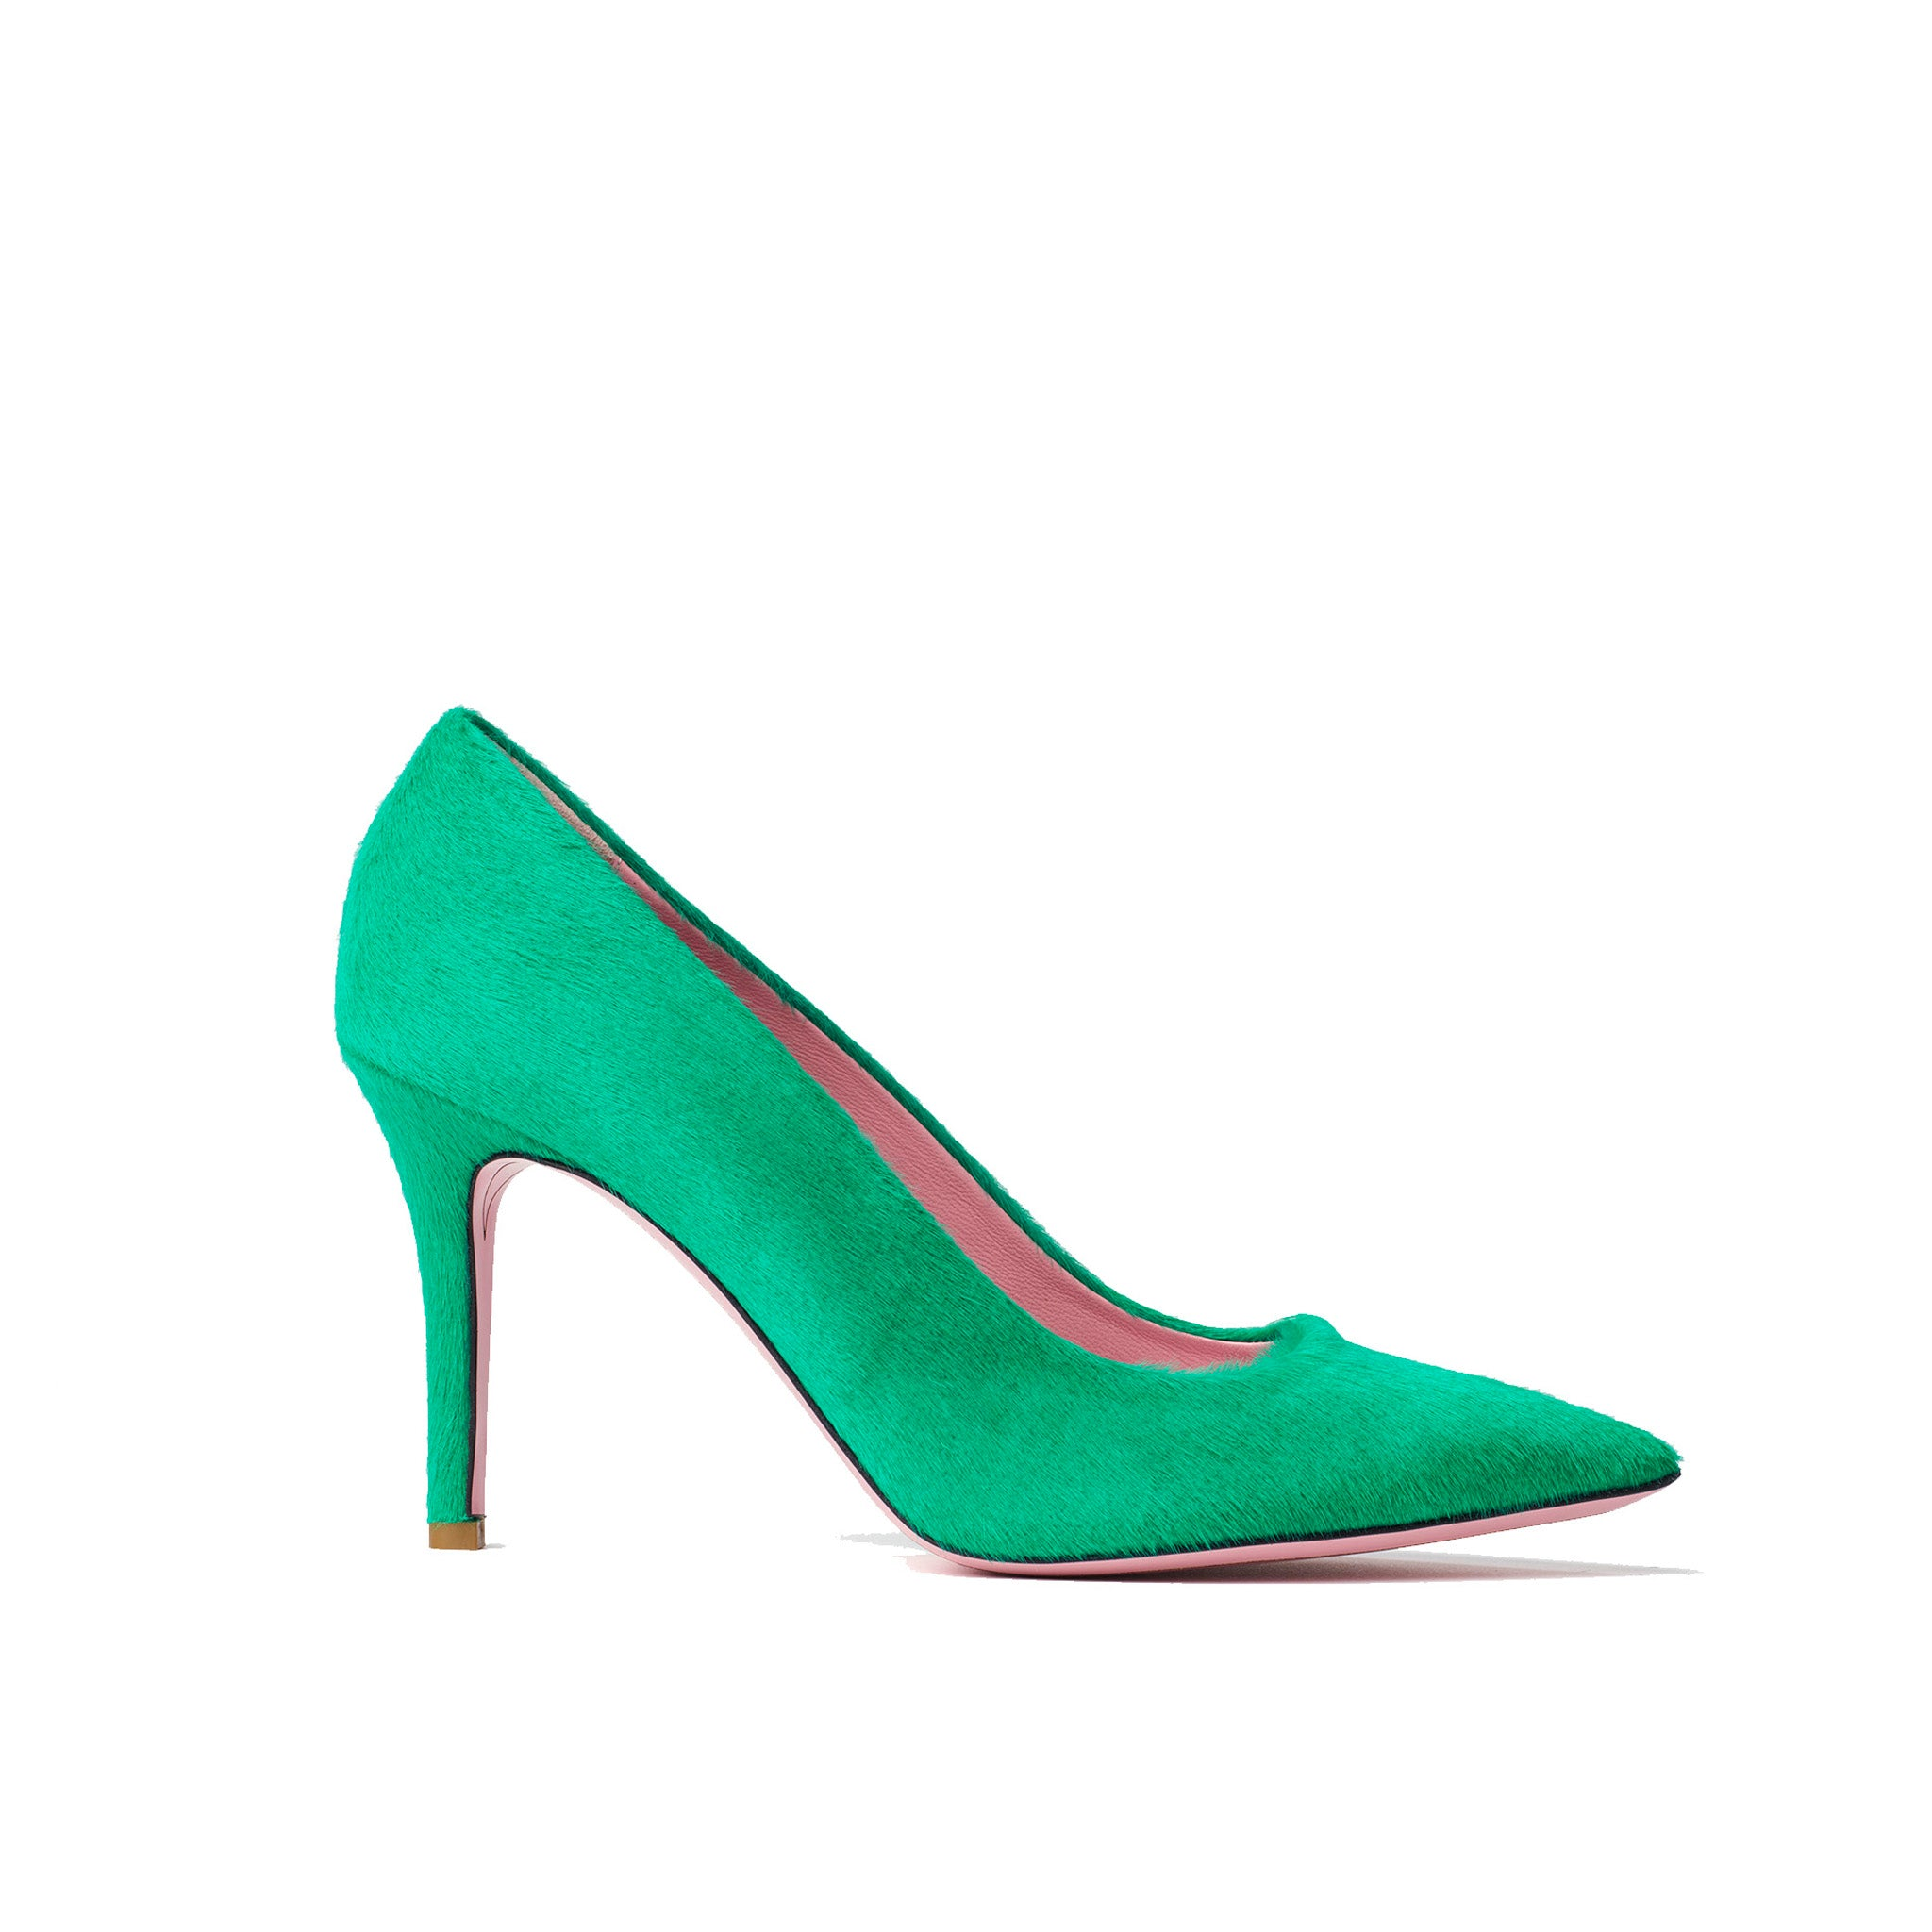 Phare slim heel pump in malachite pony hair